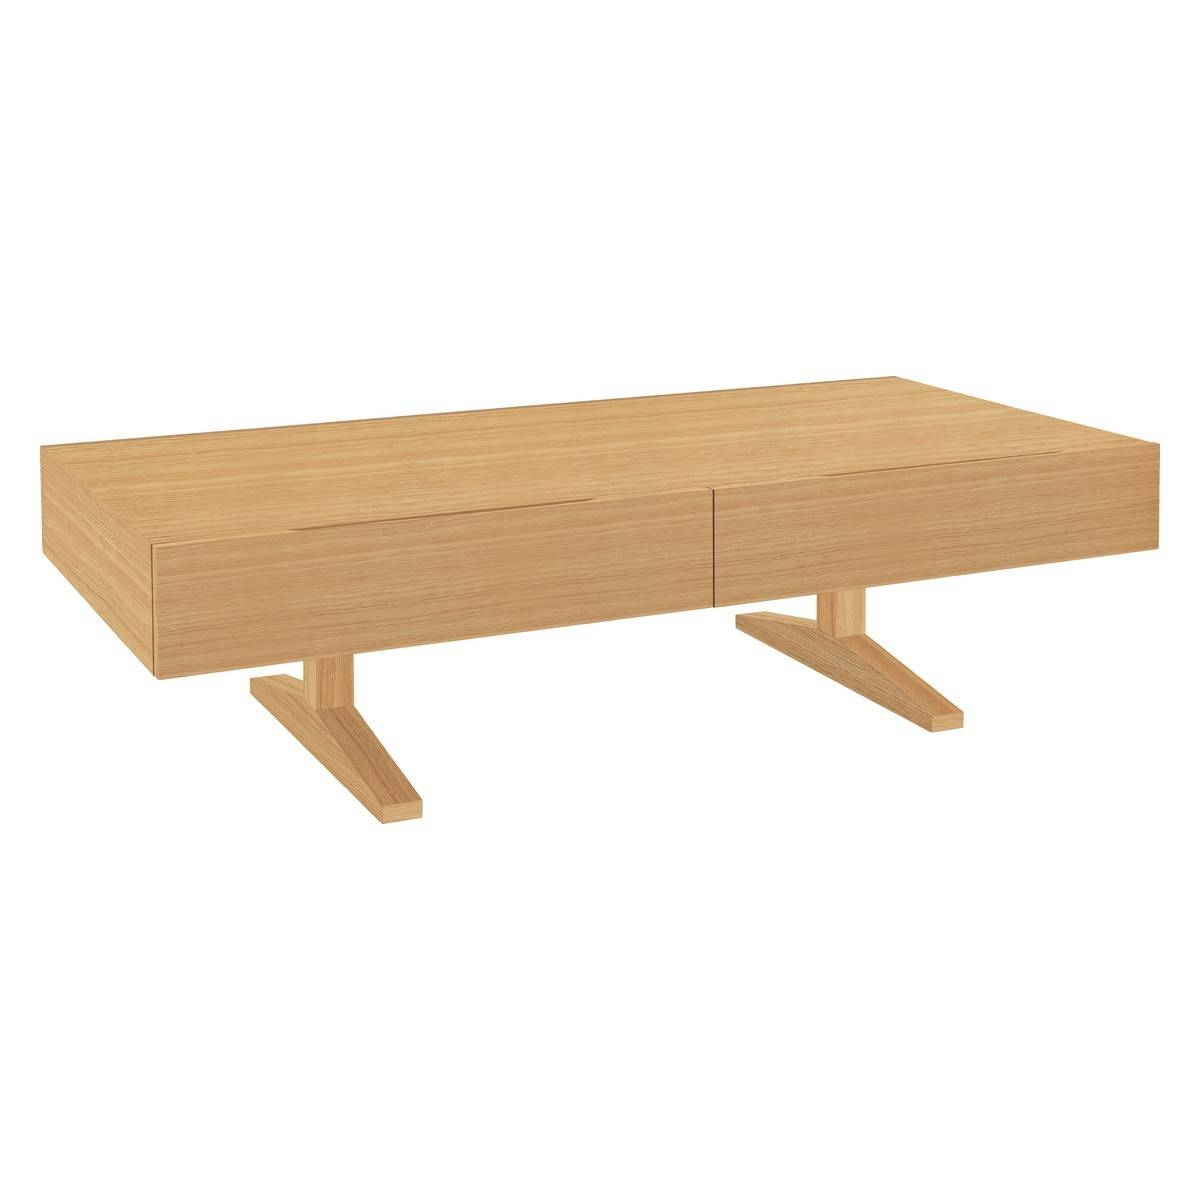 Enzo Oak Coffee Table With Storage | Buy Now At Habitat Uk intended for Oak Coffee Tables With Storage (Image 2 of 15)